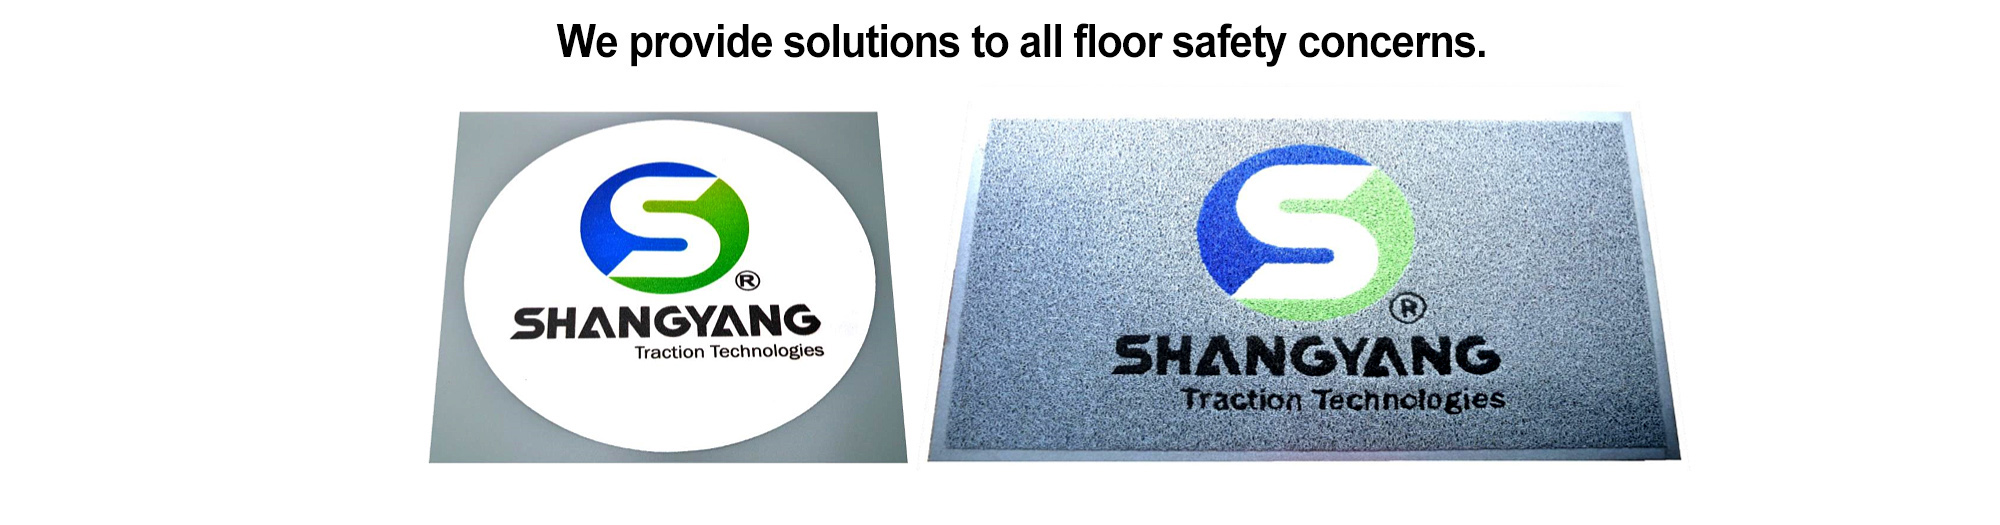 Shangyang Traction Technologies